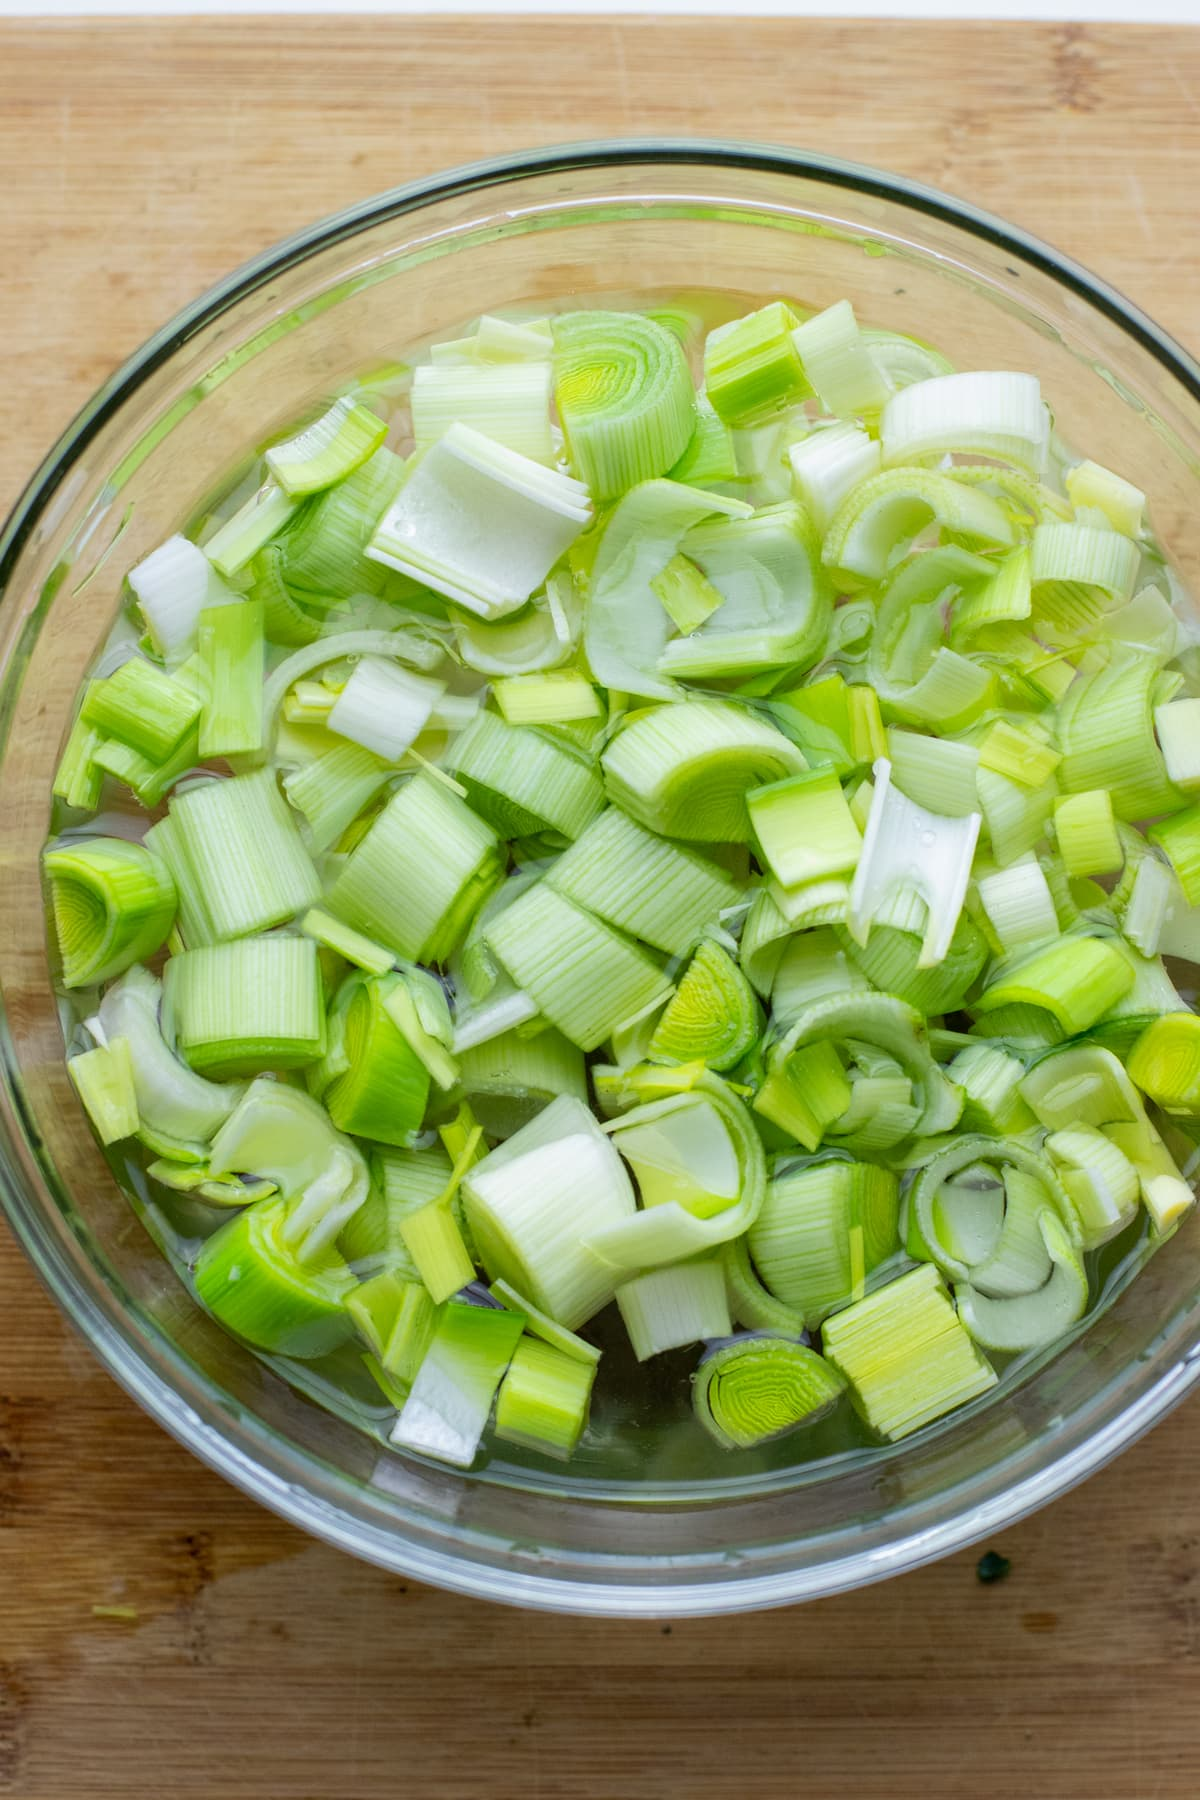 A clear glass bowl with chopped leeks soaking in water with a cutting board in the background.